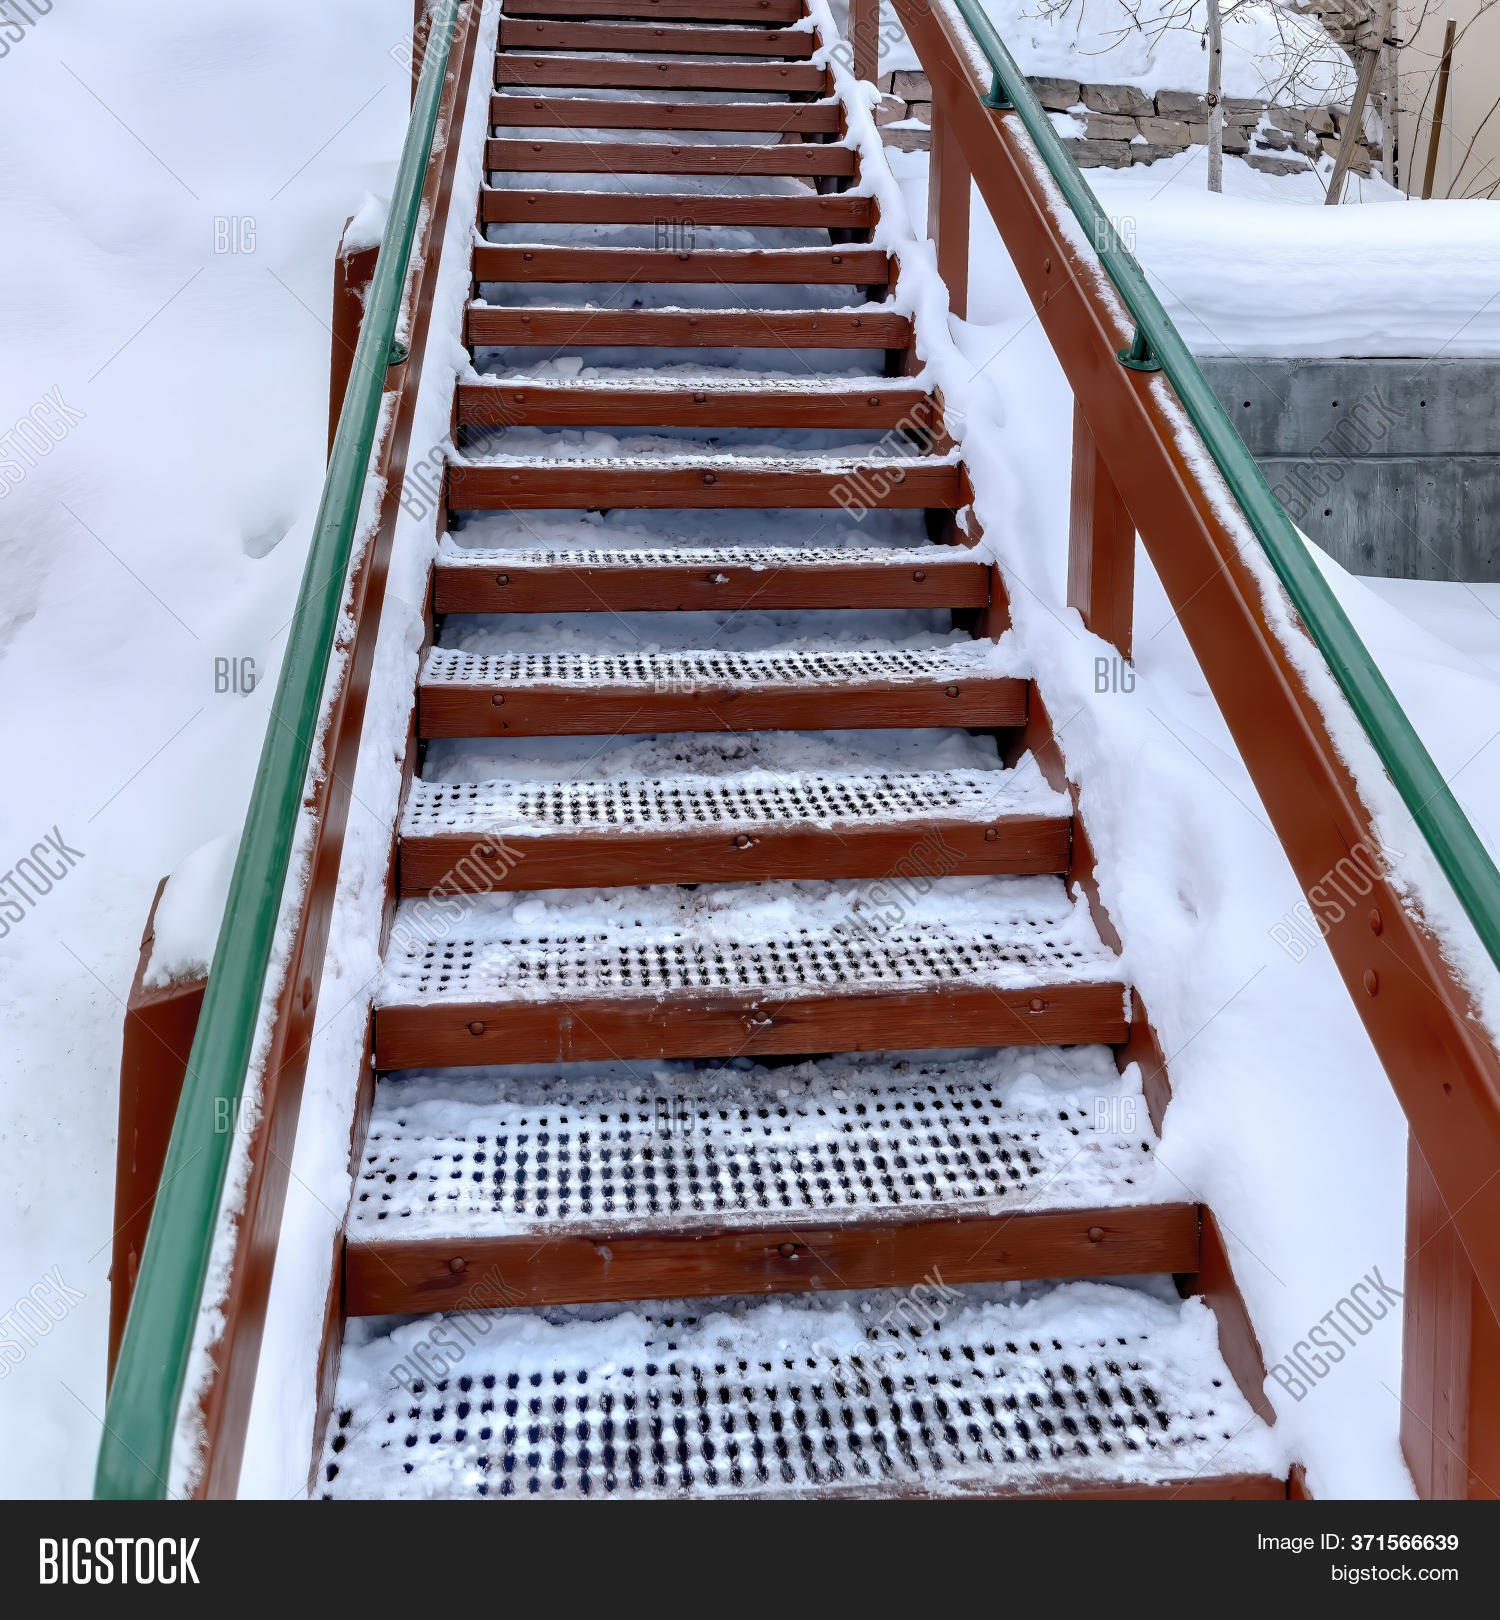 Image of: Square Outdoor Stairs Image Photo Free Trial Bigstock